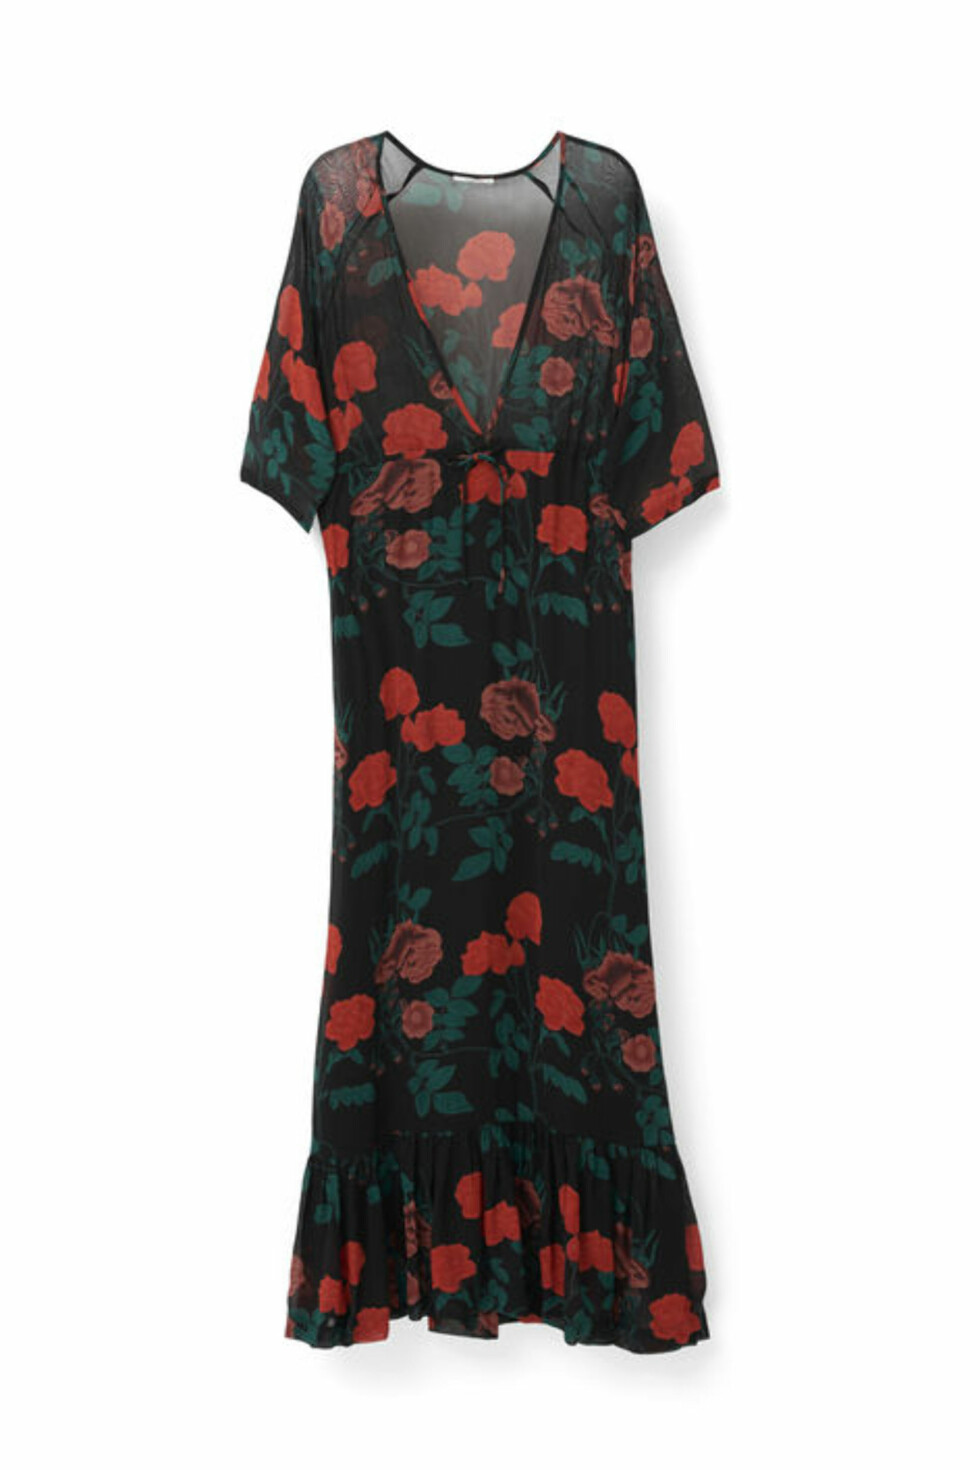 Kjole fra Ganni | kr 1469 | http://www.ganni.com/shop/dresses/newman-georgette-maxi-dress/F1660.html?dwvar_F1660_color=Black